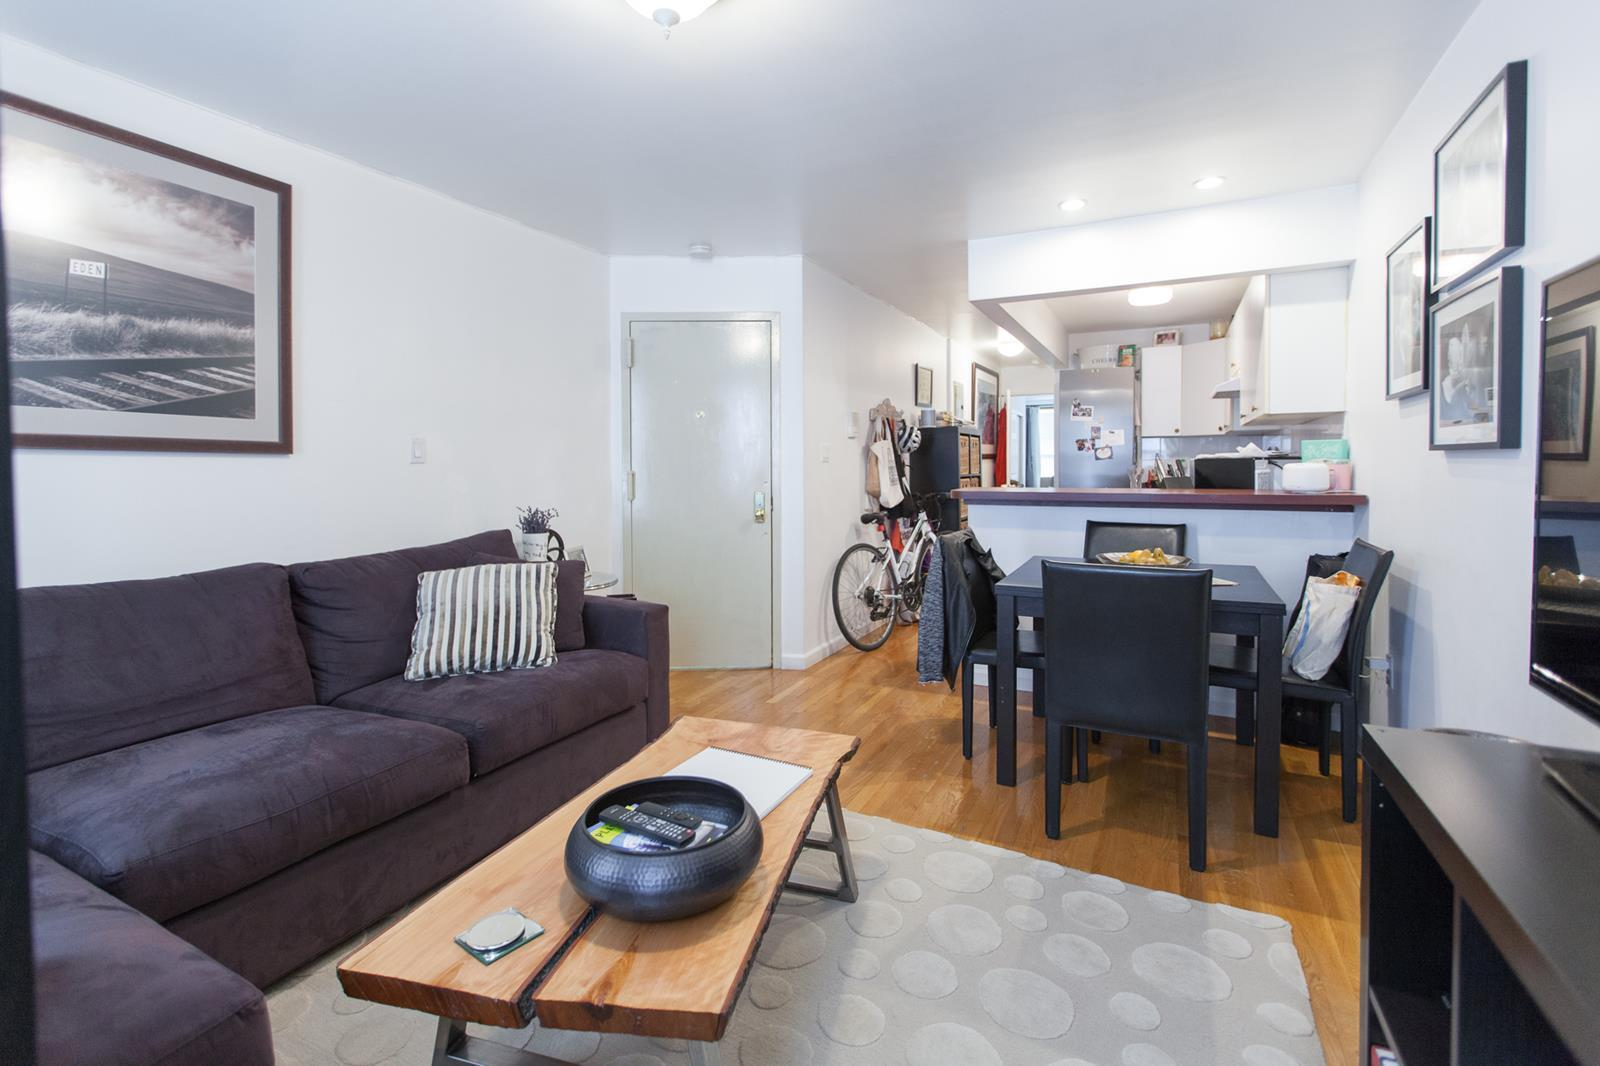 109 Newell Street, Apt 2-L, Brooklyn, New York 11222